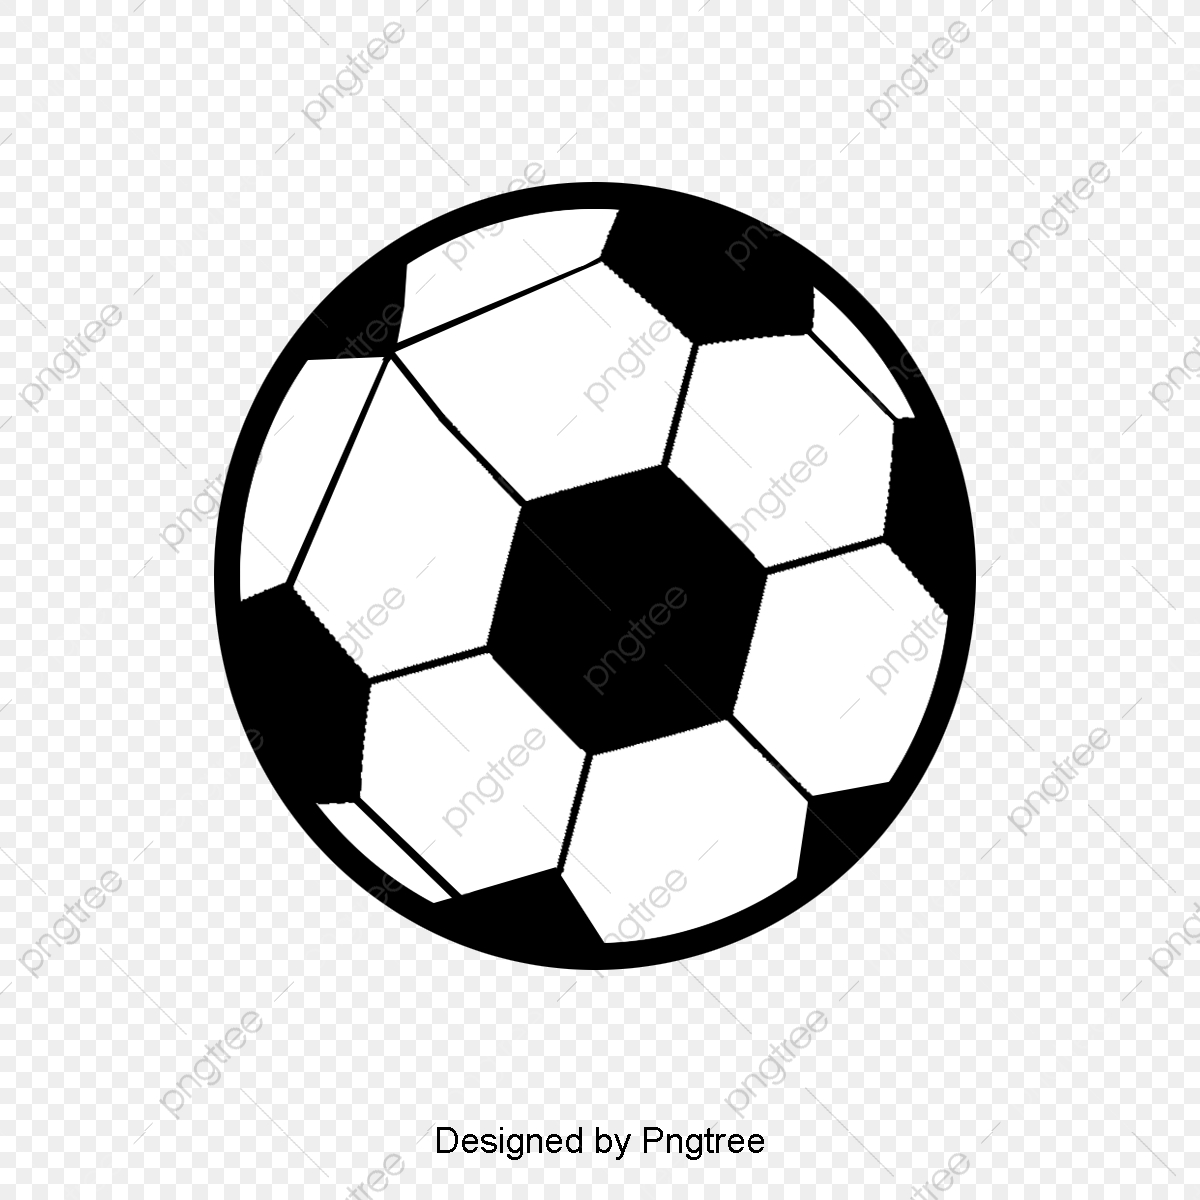 Cartoon Black And White Football Logo Football Clipart Logo Clipart Cartoon Png Transparent Clipart Image And Psd File For Free Download